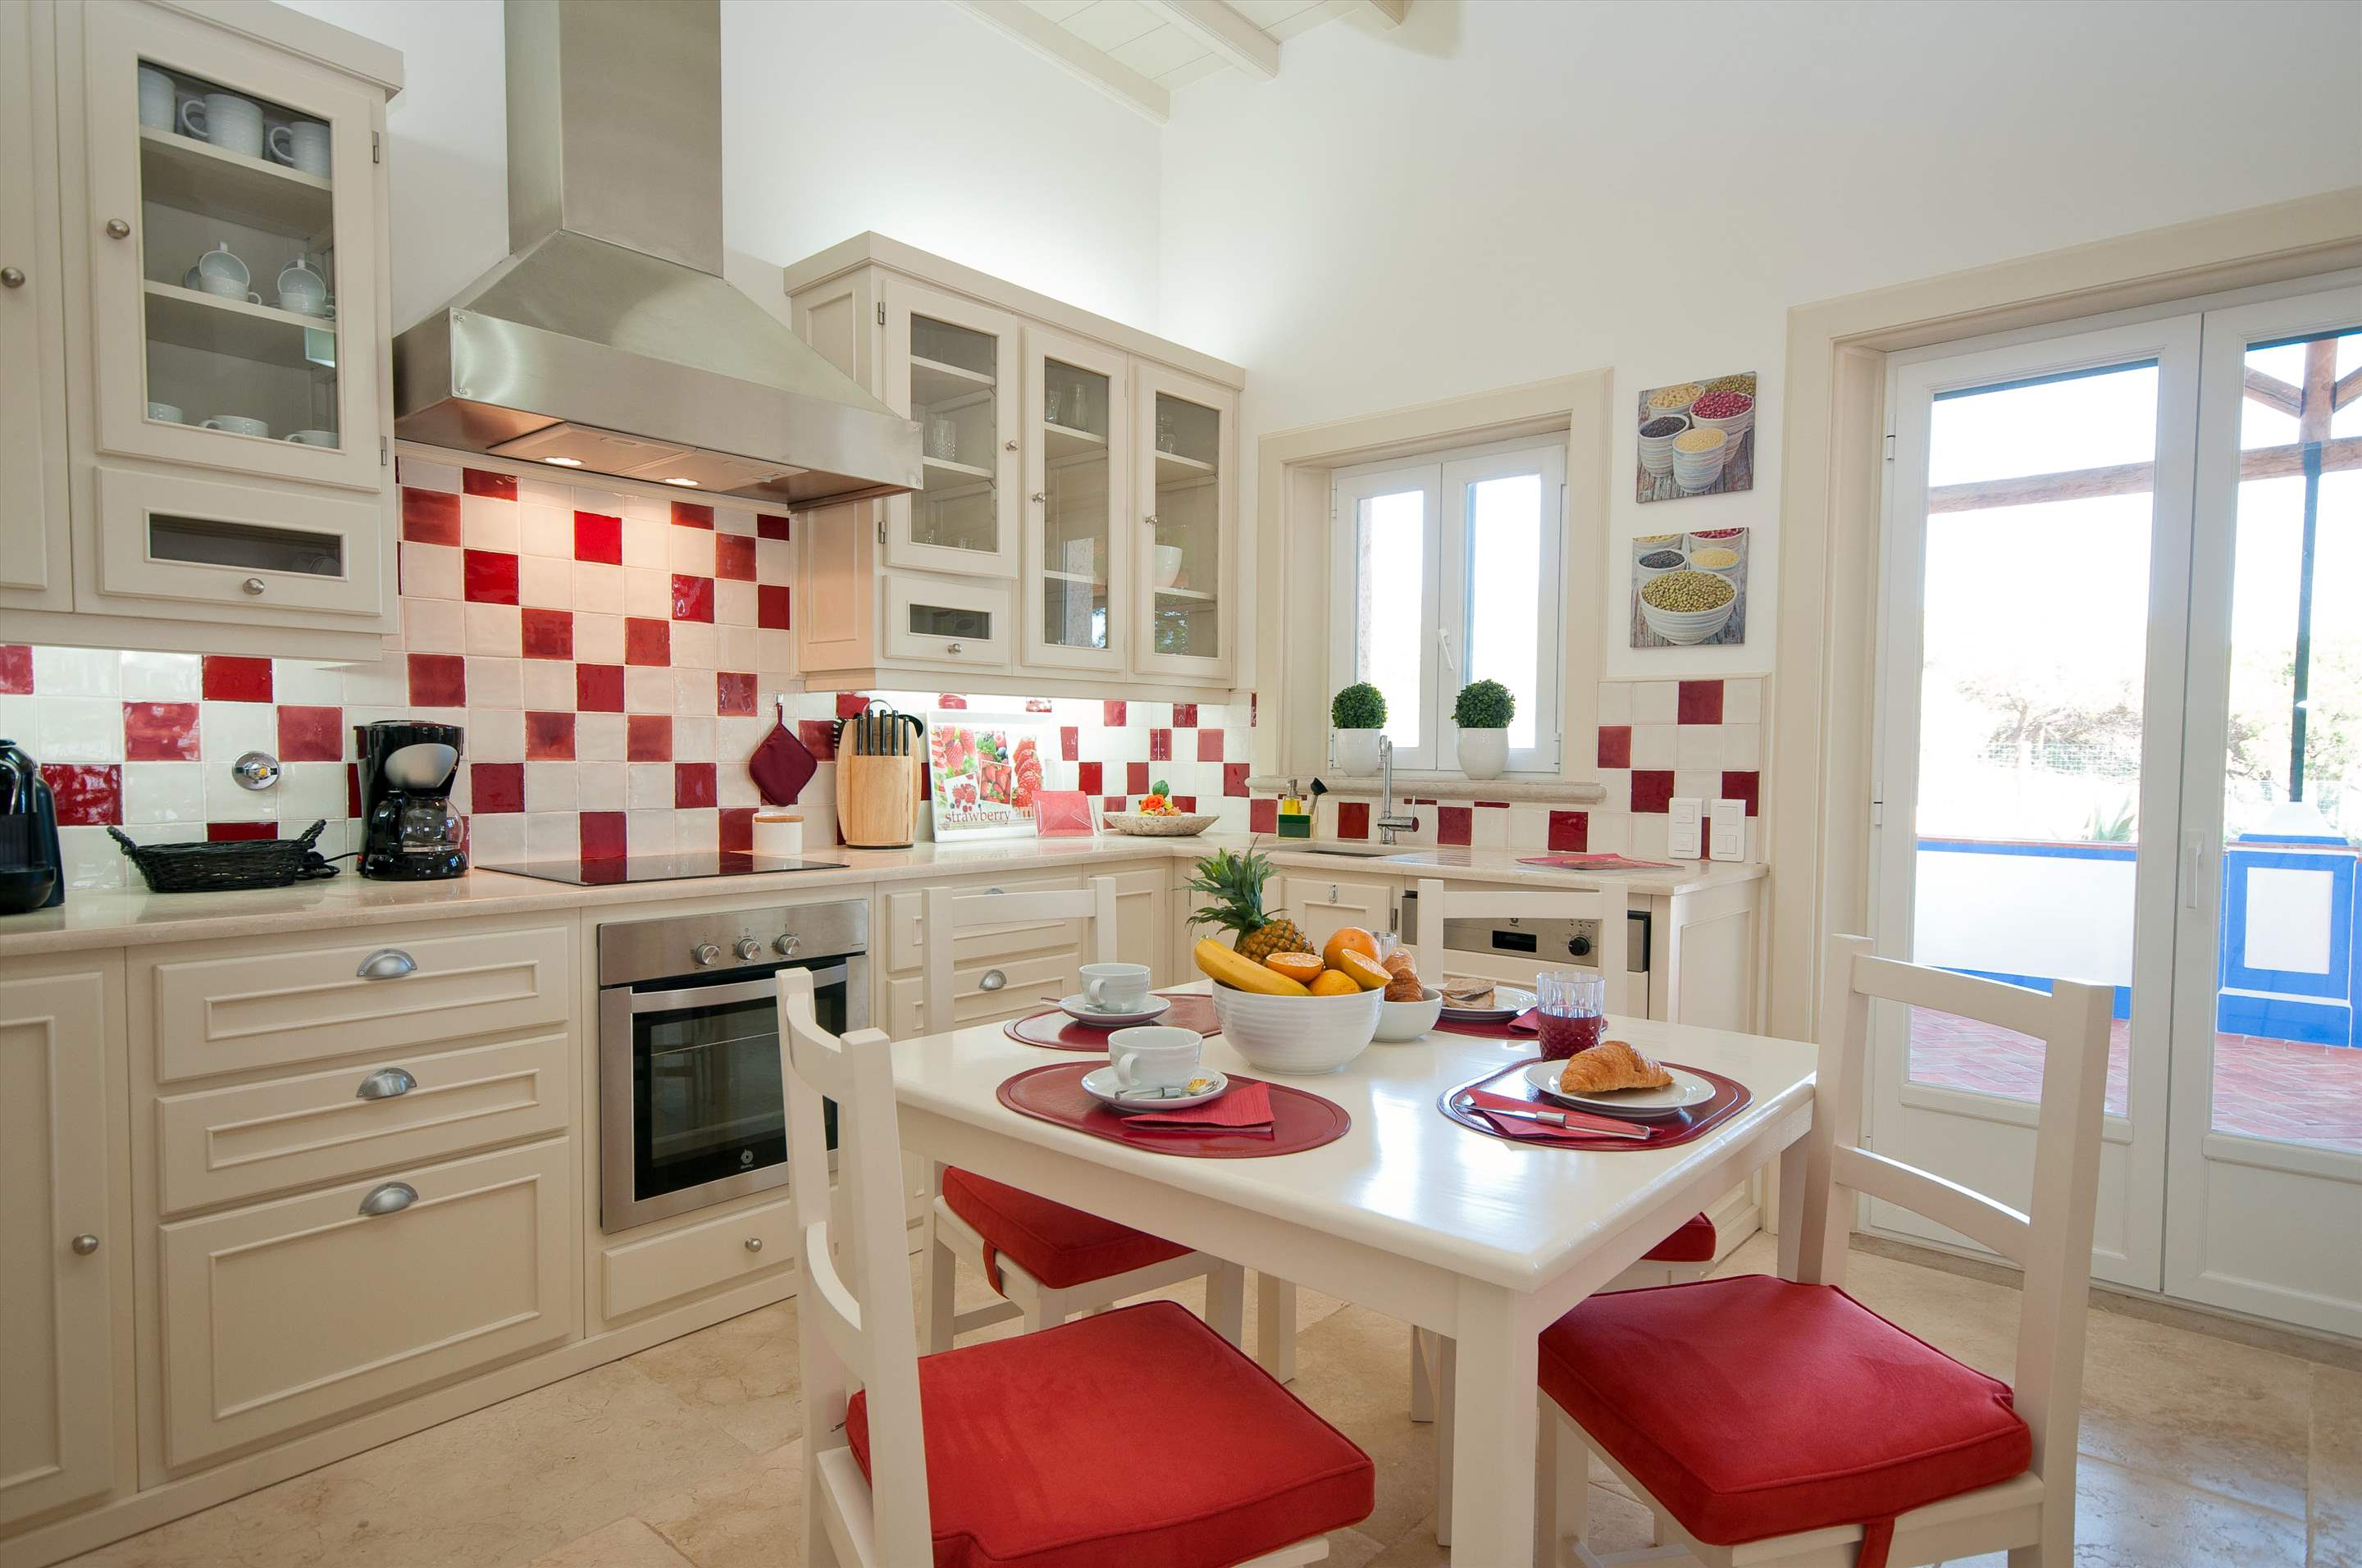 Villa Mirante 1, Five Bedroom Rate, 5 bedroom villa in Albufeira Area, Algarve Photo #6